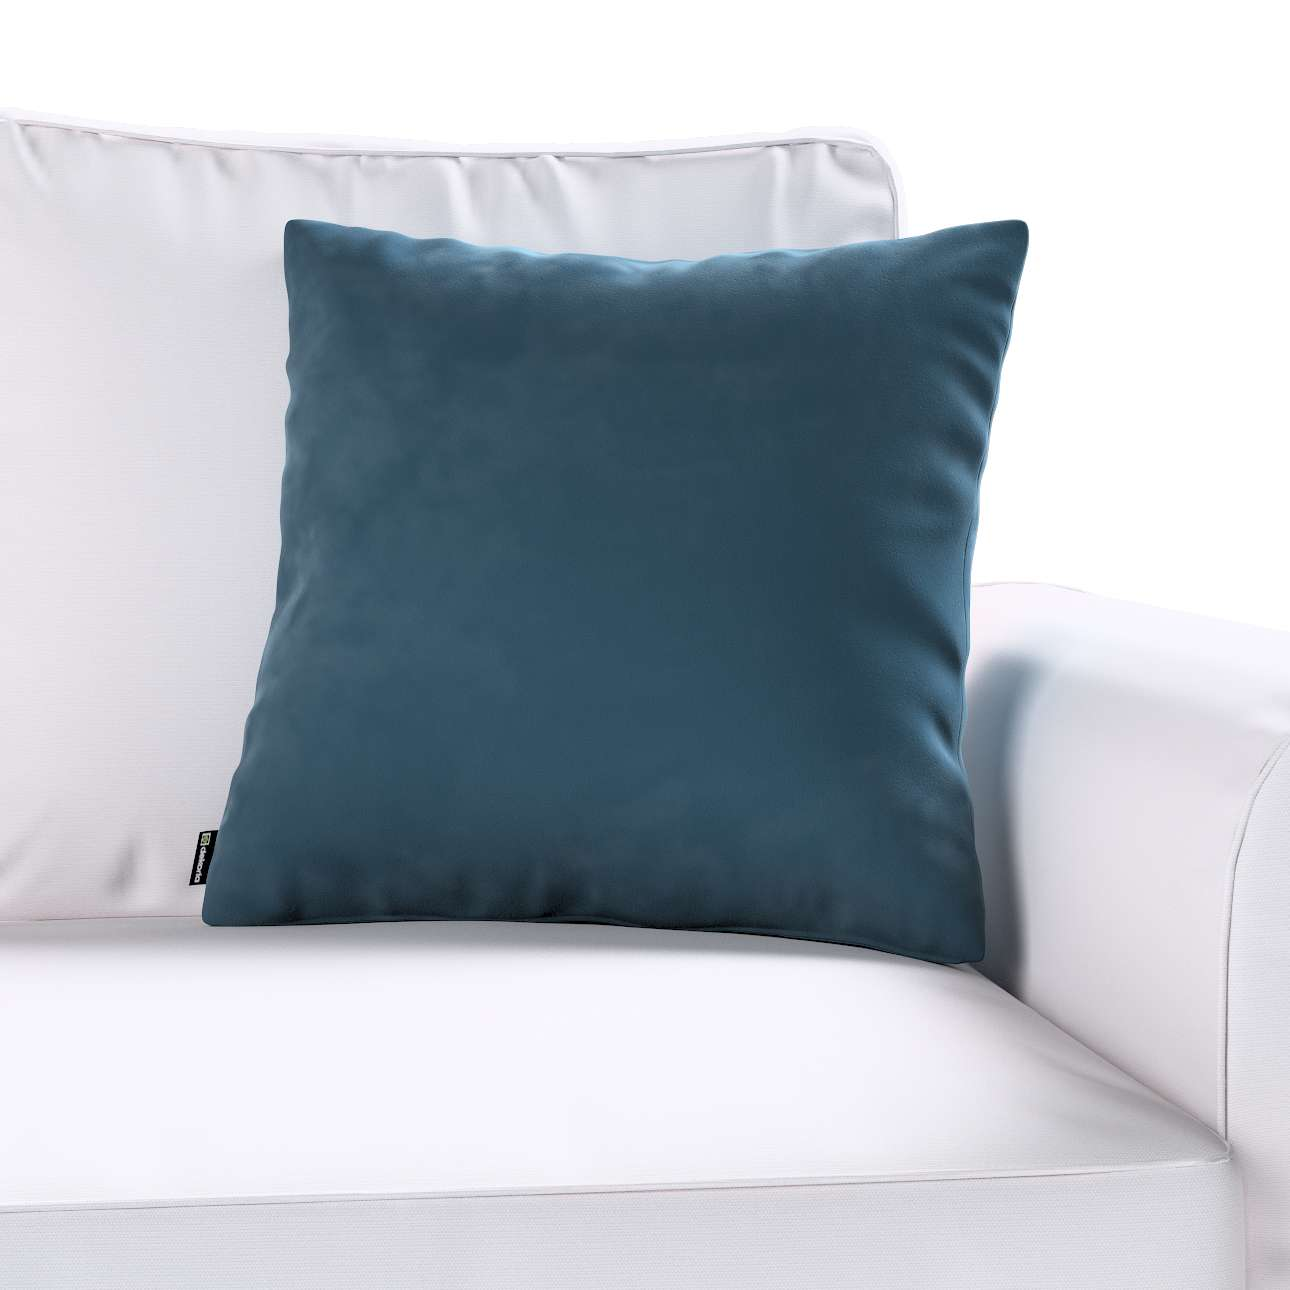 Kinga cushion cover in collection Velvet, fabric: 704-16